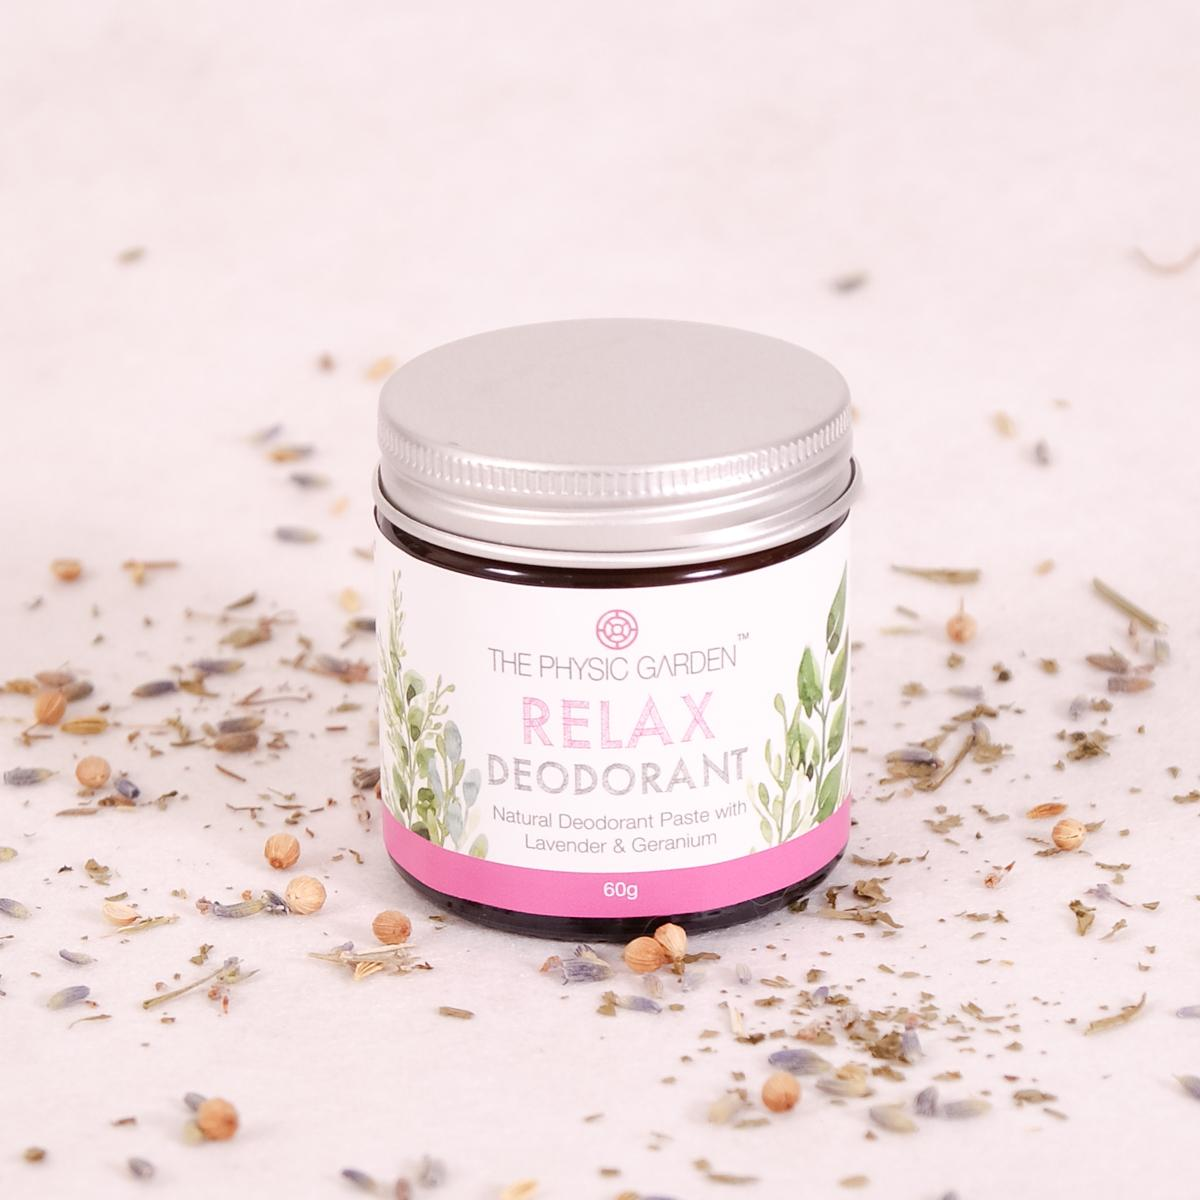 The Physic Garden Relax Deodorant - 60gm - Deodorant - Throw Some Seeds - Australian gardening gifts and eco products online!